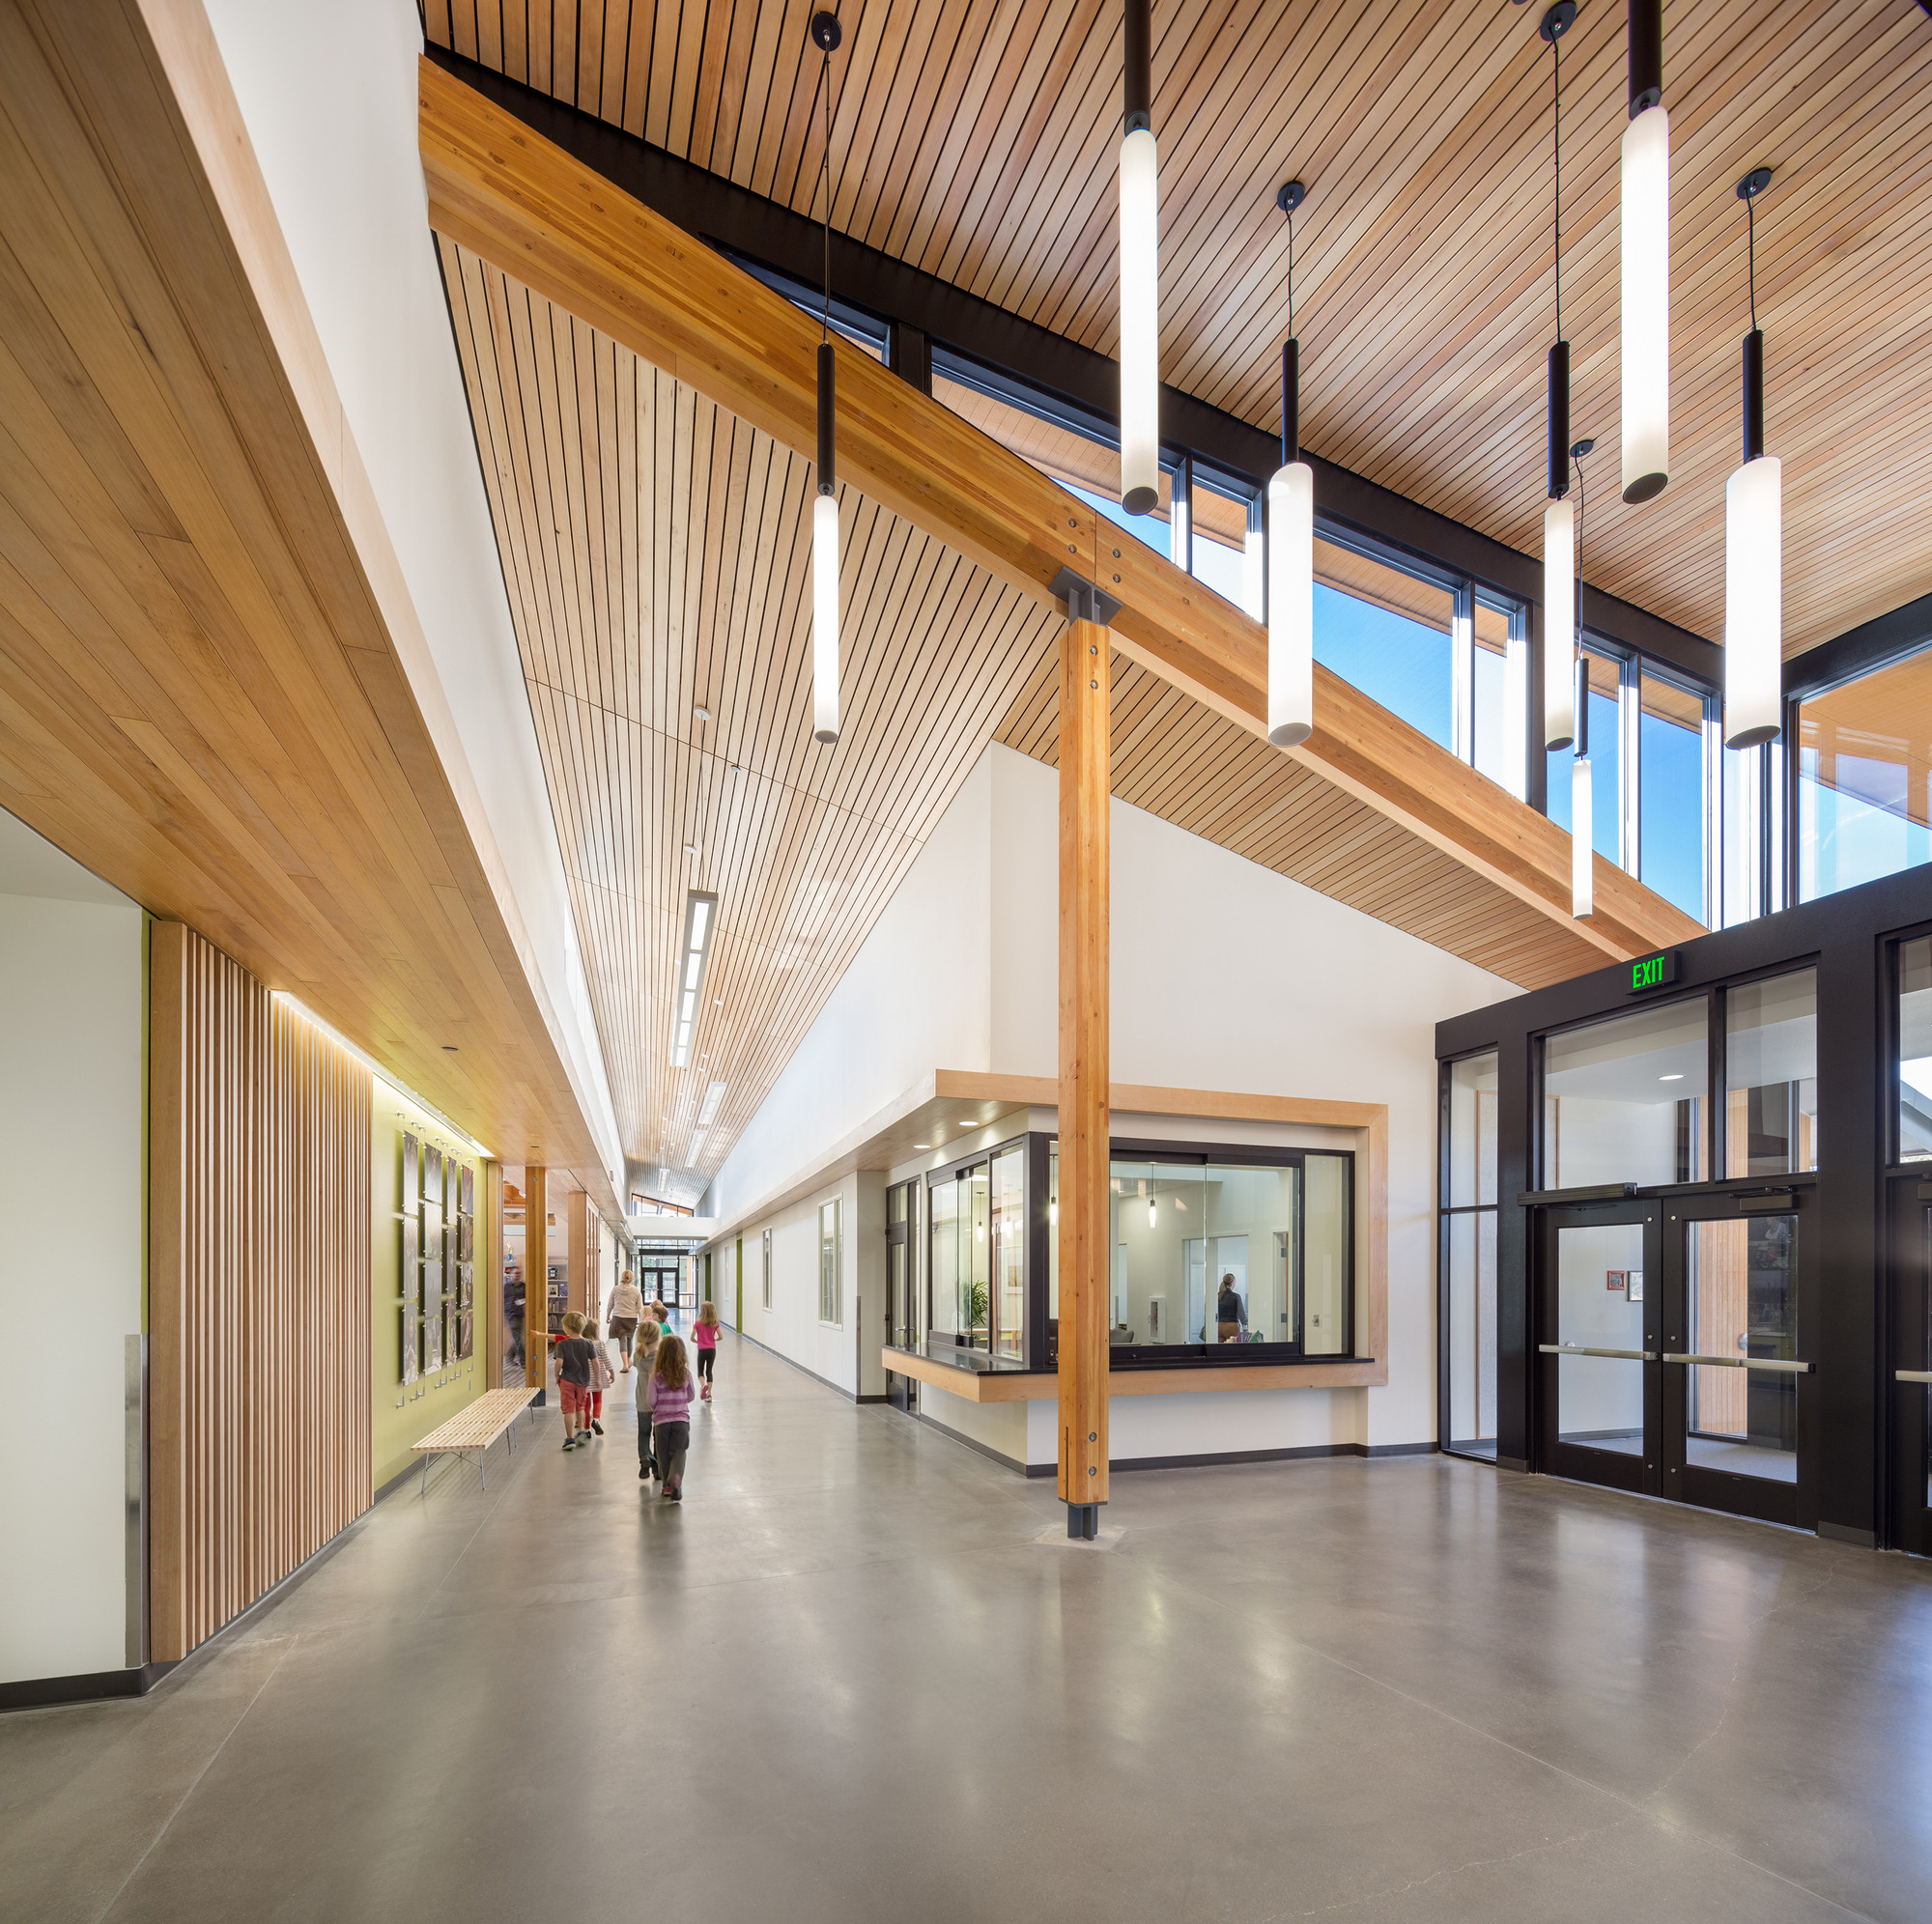 2014 U.S. Wood Design Award Winners